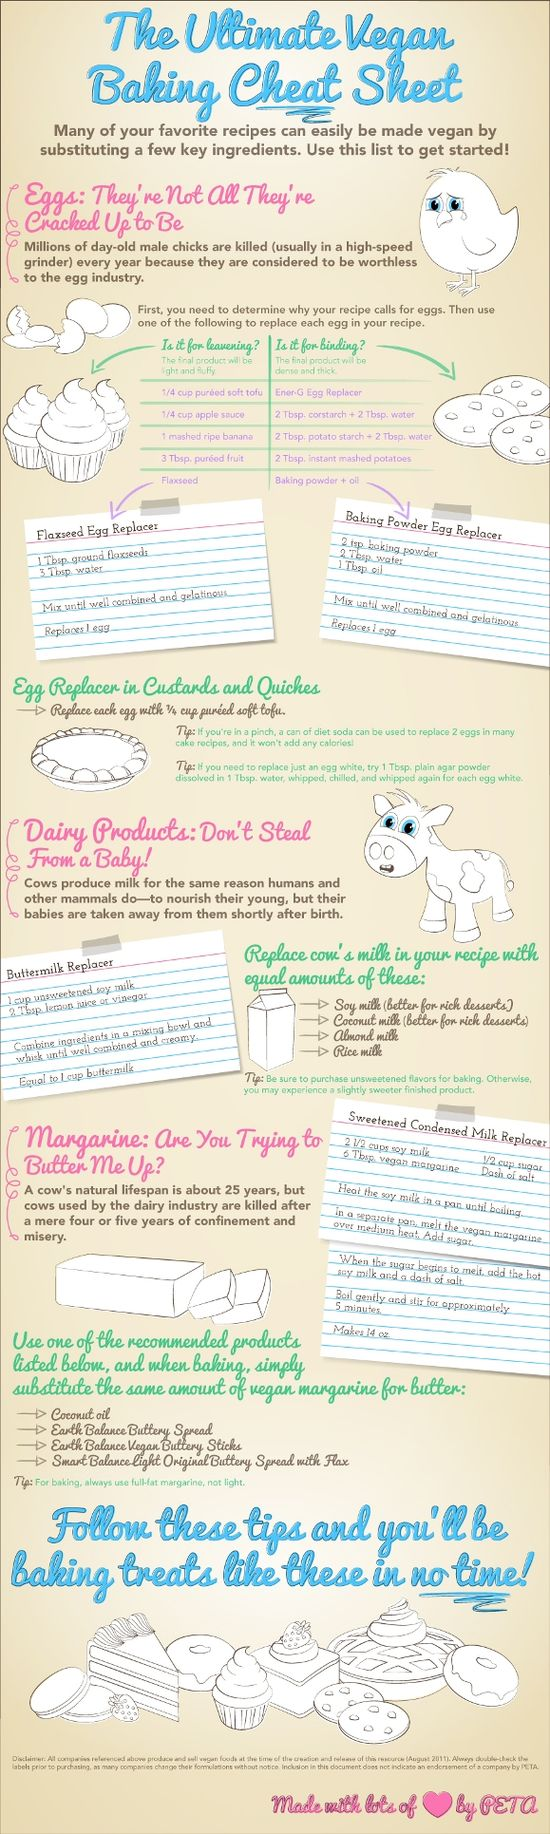 PETA's Ultimate Vegan Baking Cheat Sheet. Great for those with dairy & egg allergies too!